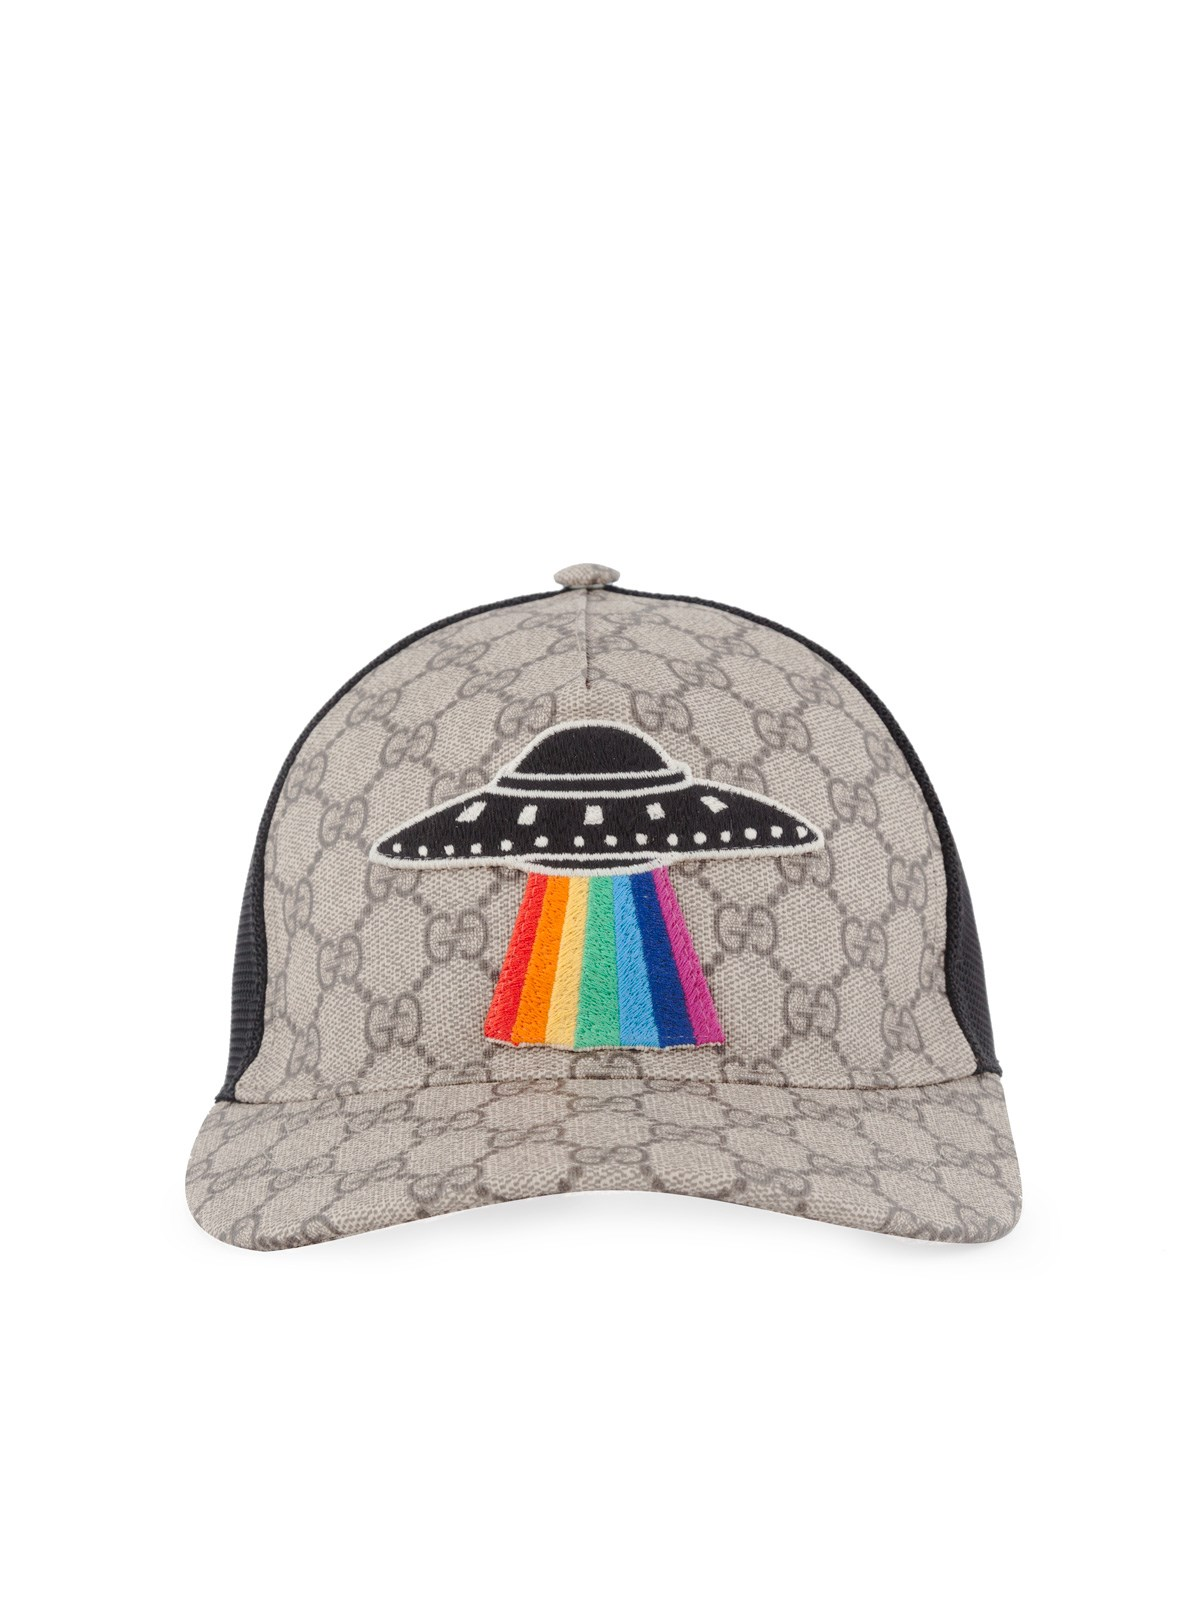 gucci GG SUPREME UFO APPLIQUE BASEBALL CAP available on ... c8683d24367